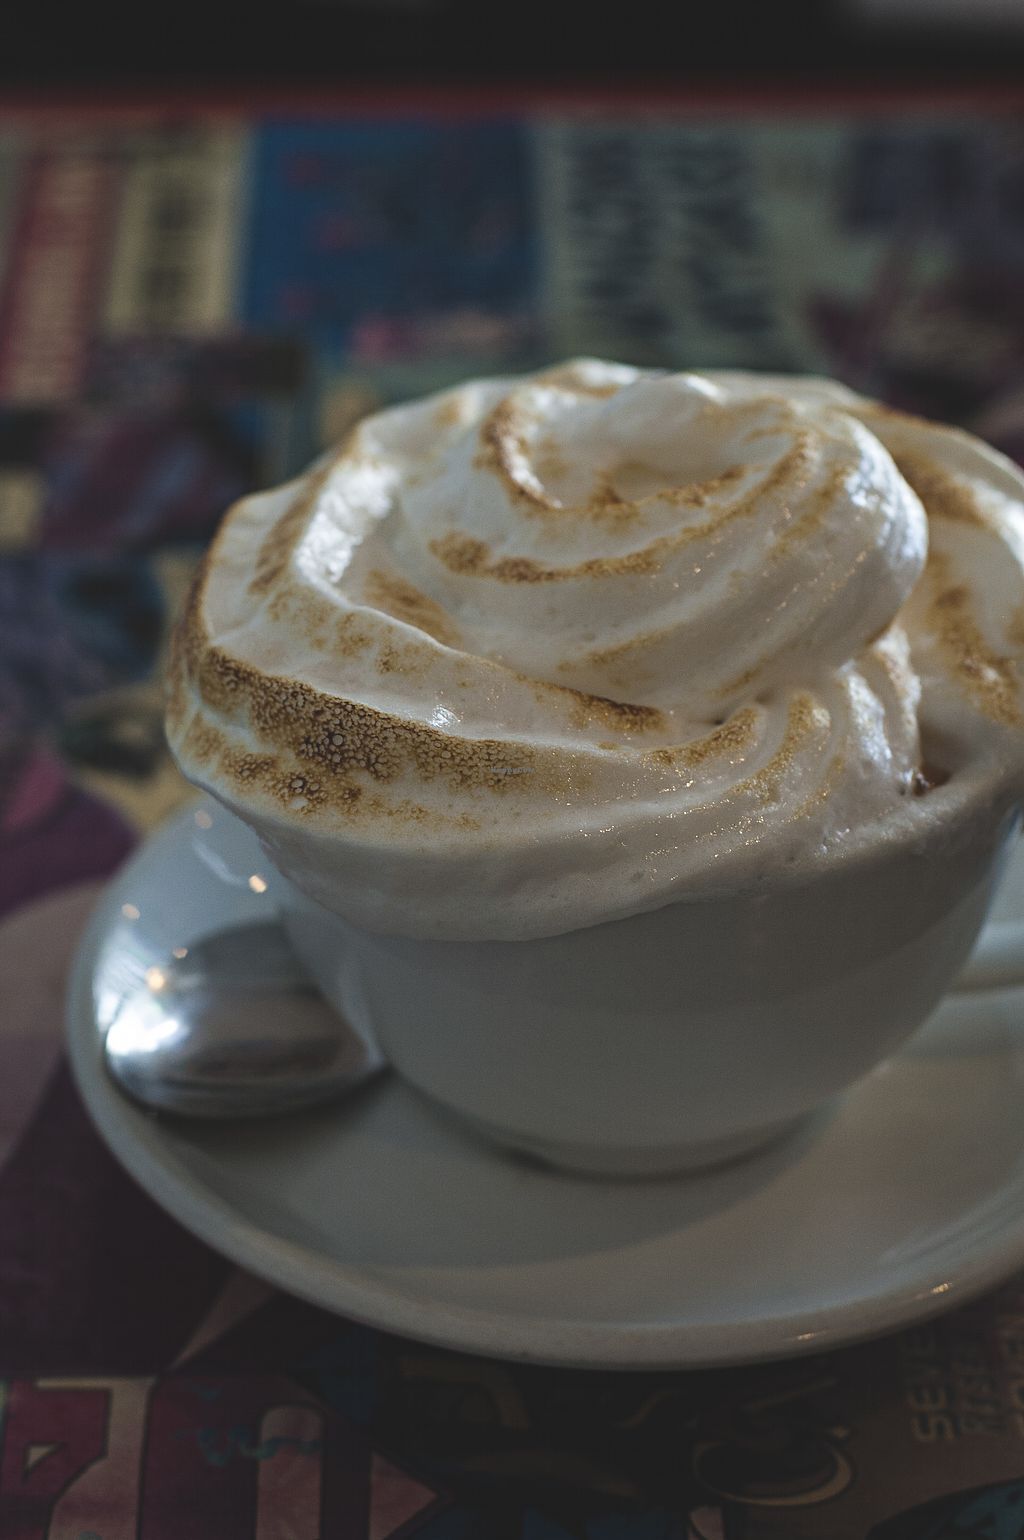 """Photo of Sweet Release Cakes and Treats  by <a href=""""/members/profile/peasandunderstanding"""">peasandunderstanding</a> <br/>Hot Chocolate with Toasted Marshmallow fluff  <br/> April 17, 2018  - <a href='/contact/abuse/image/66770/387252'>Report</a>"""